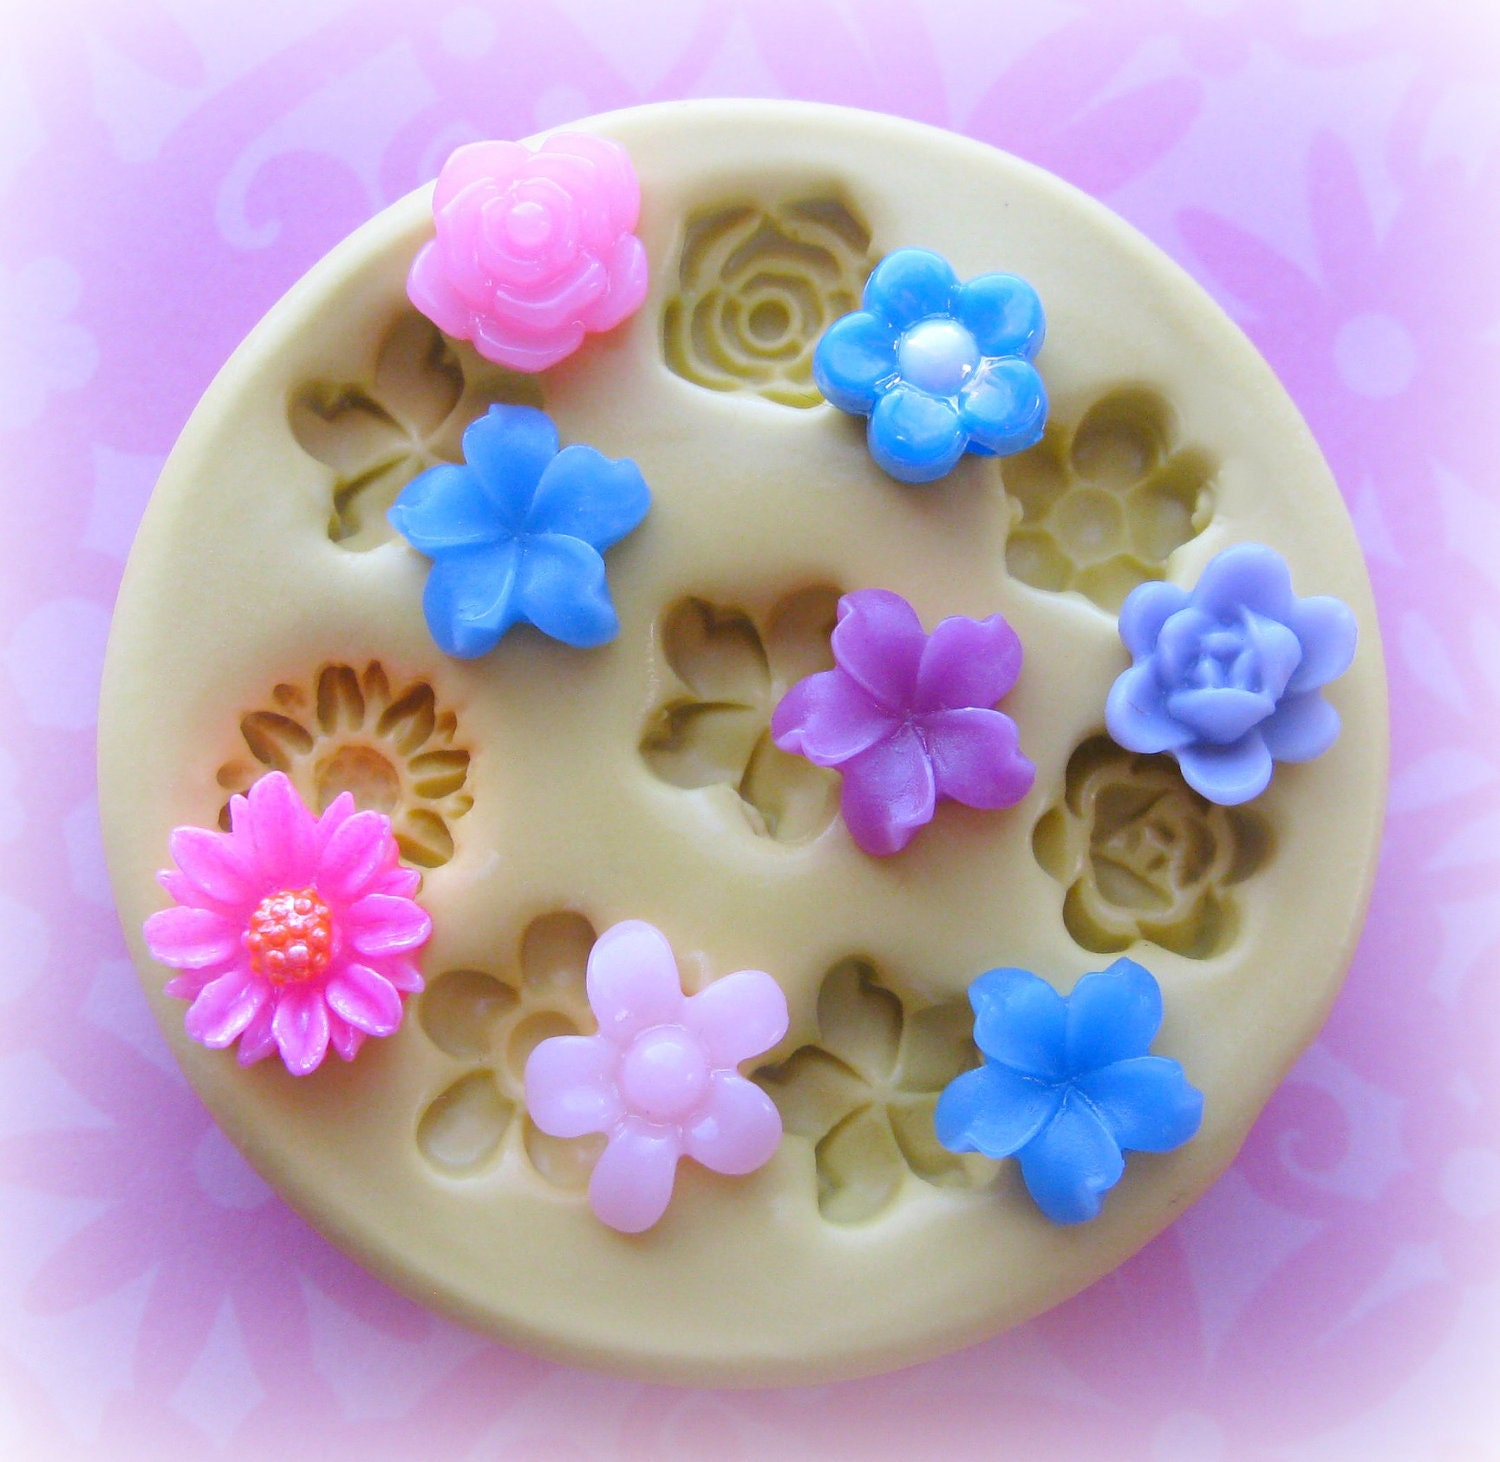 Tiny Flower Mold Daisy Rose Mold Flower Silicone by Molds4You